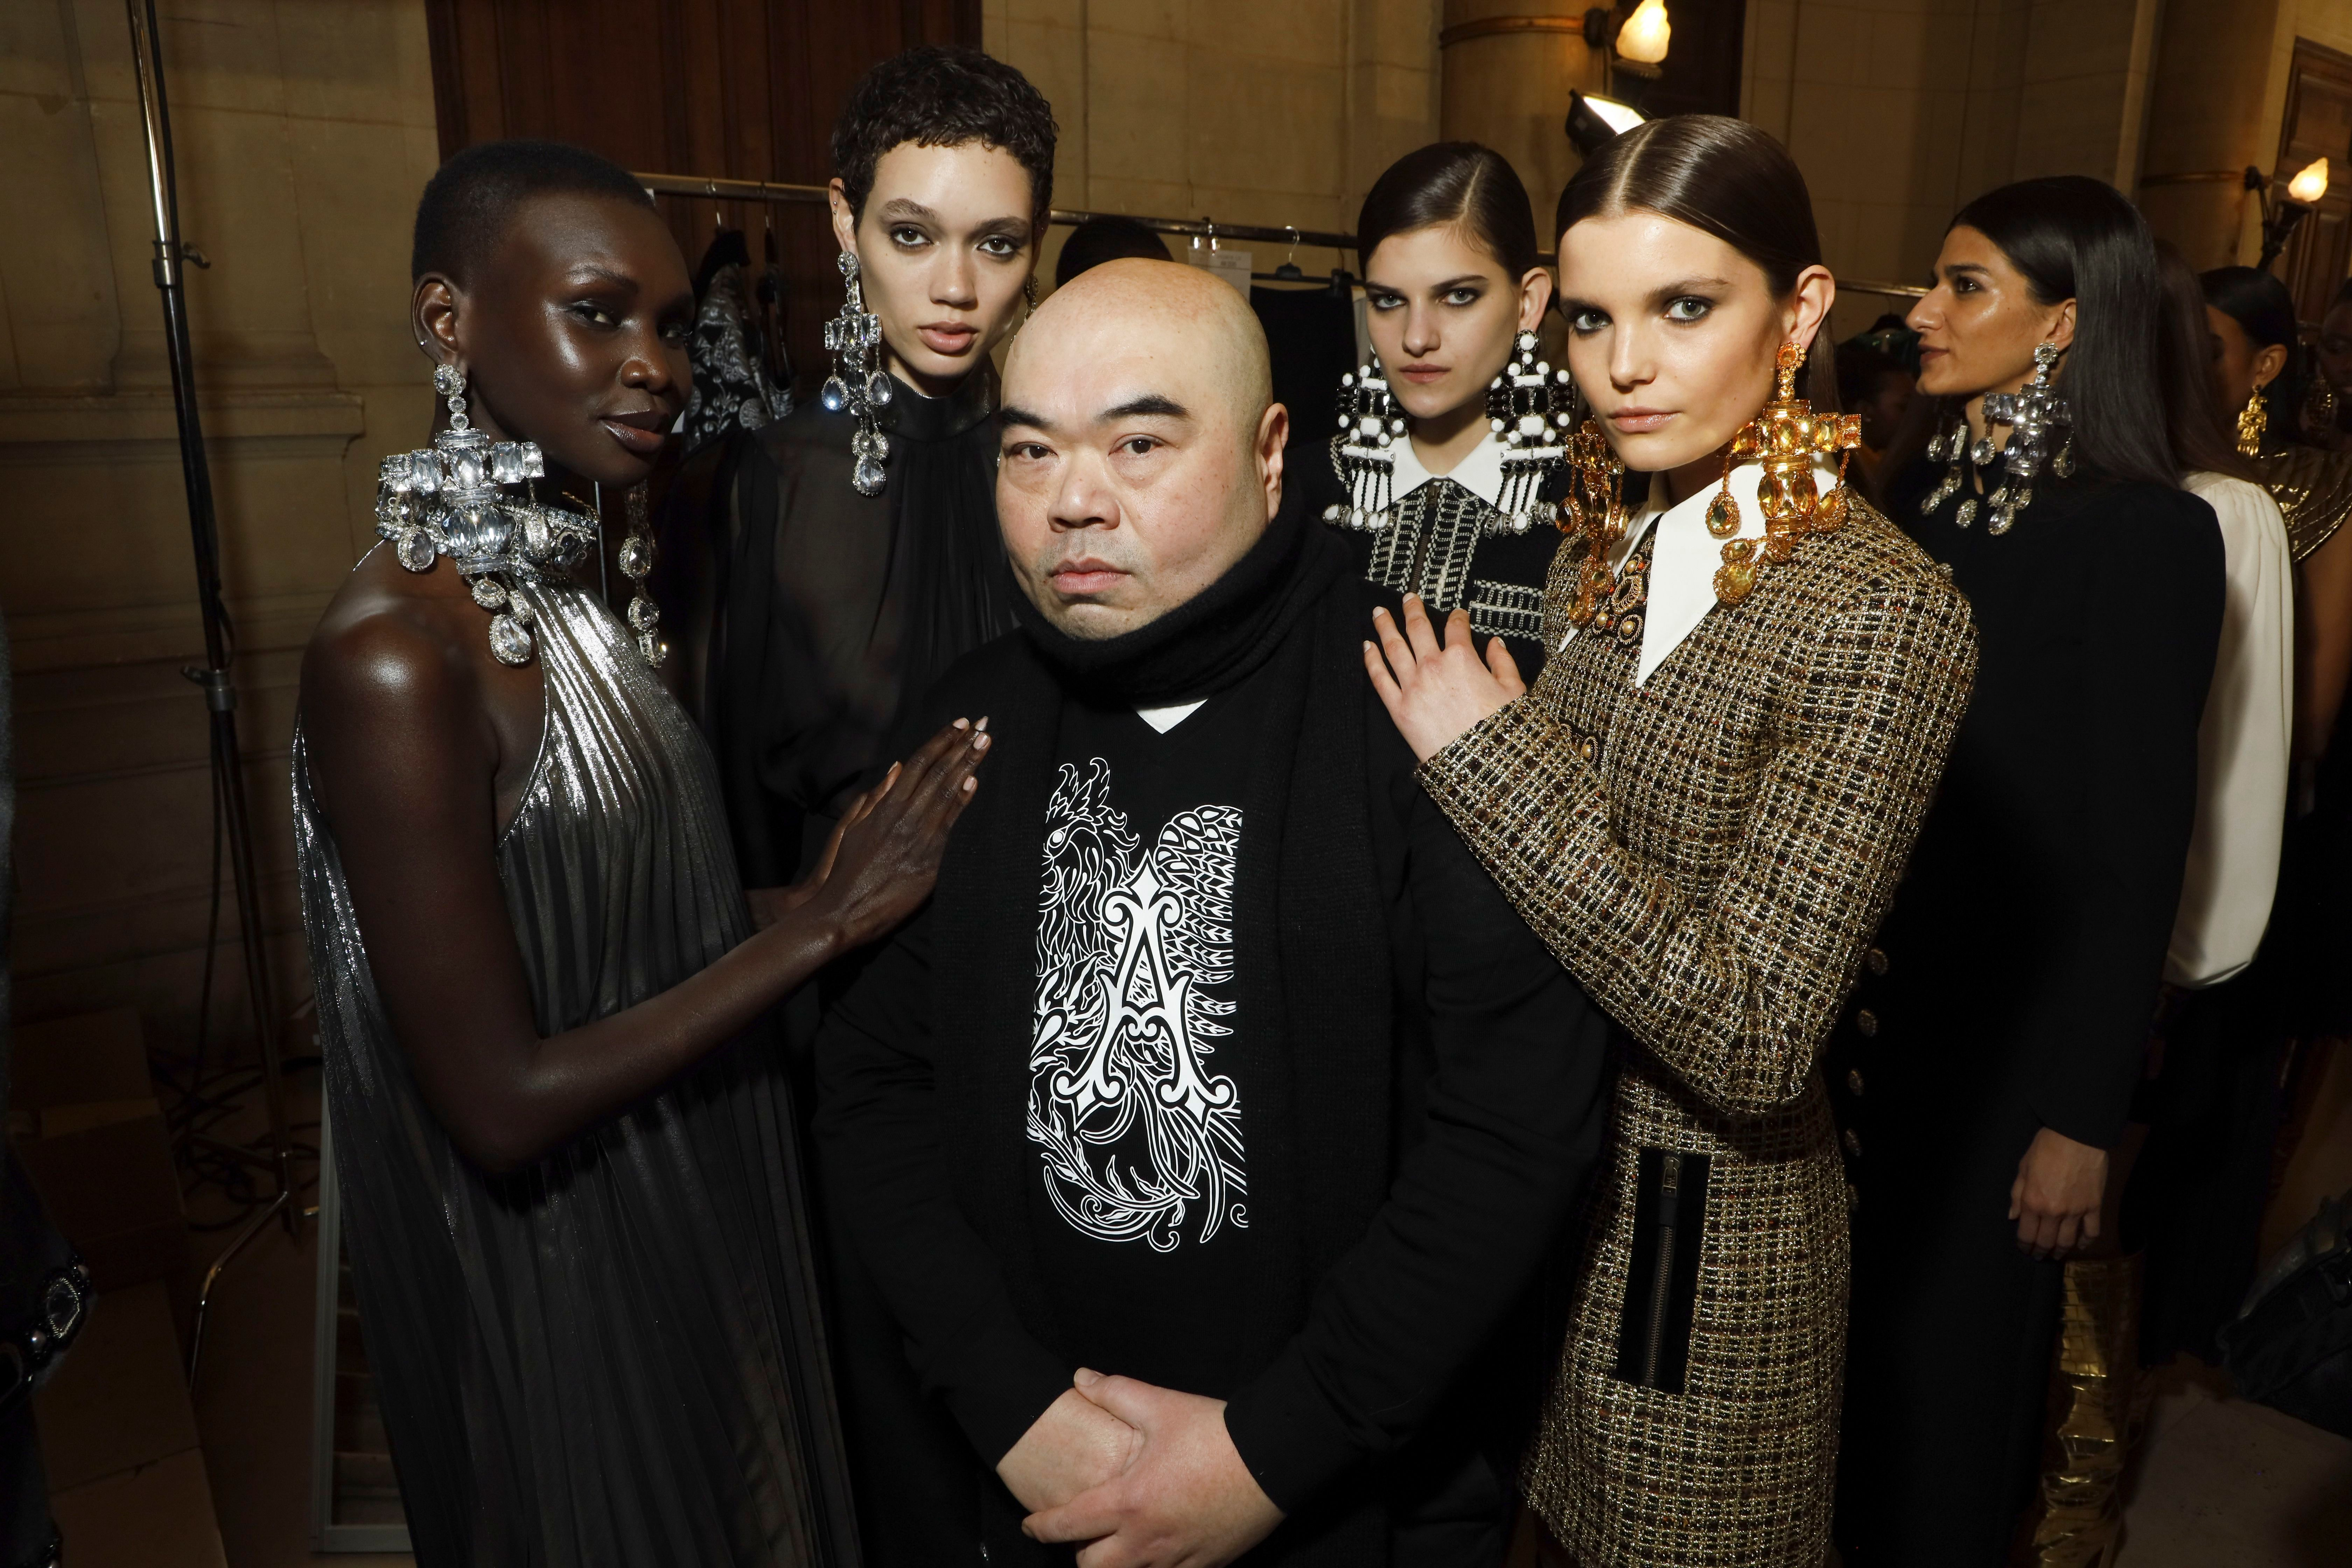 Andrew Gn and models backstageAndrew Gn show, Backstage, Fall Winter 2020, Paris Fashion Week, France - 28 Feb 2020